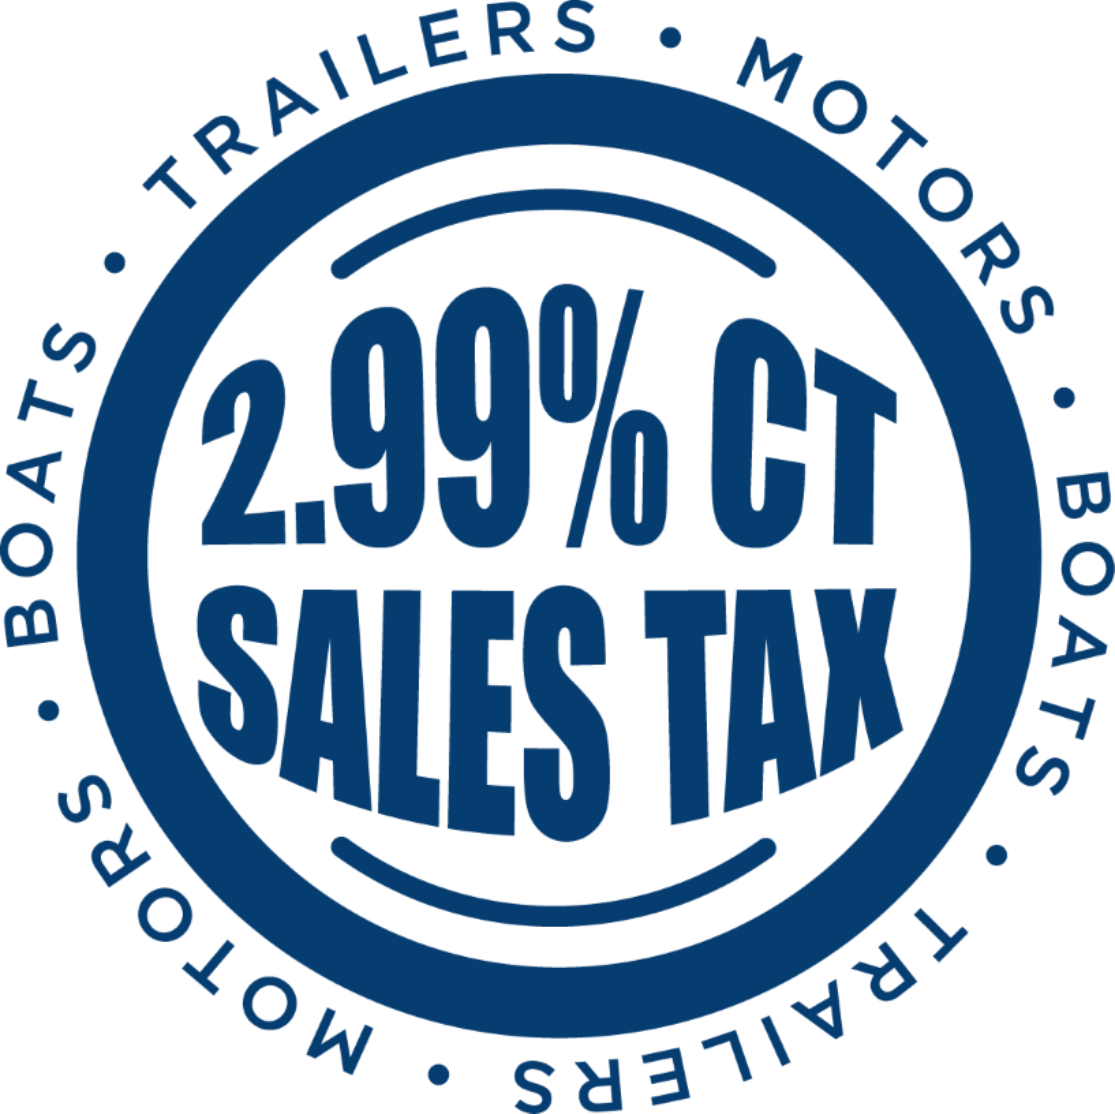 CT 299 Tax Rate